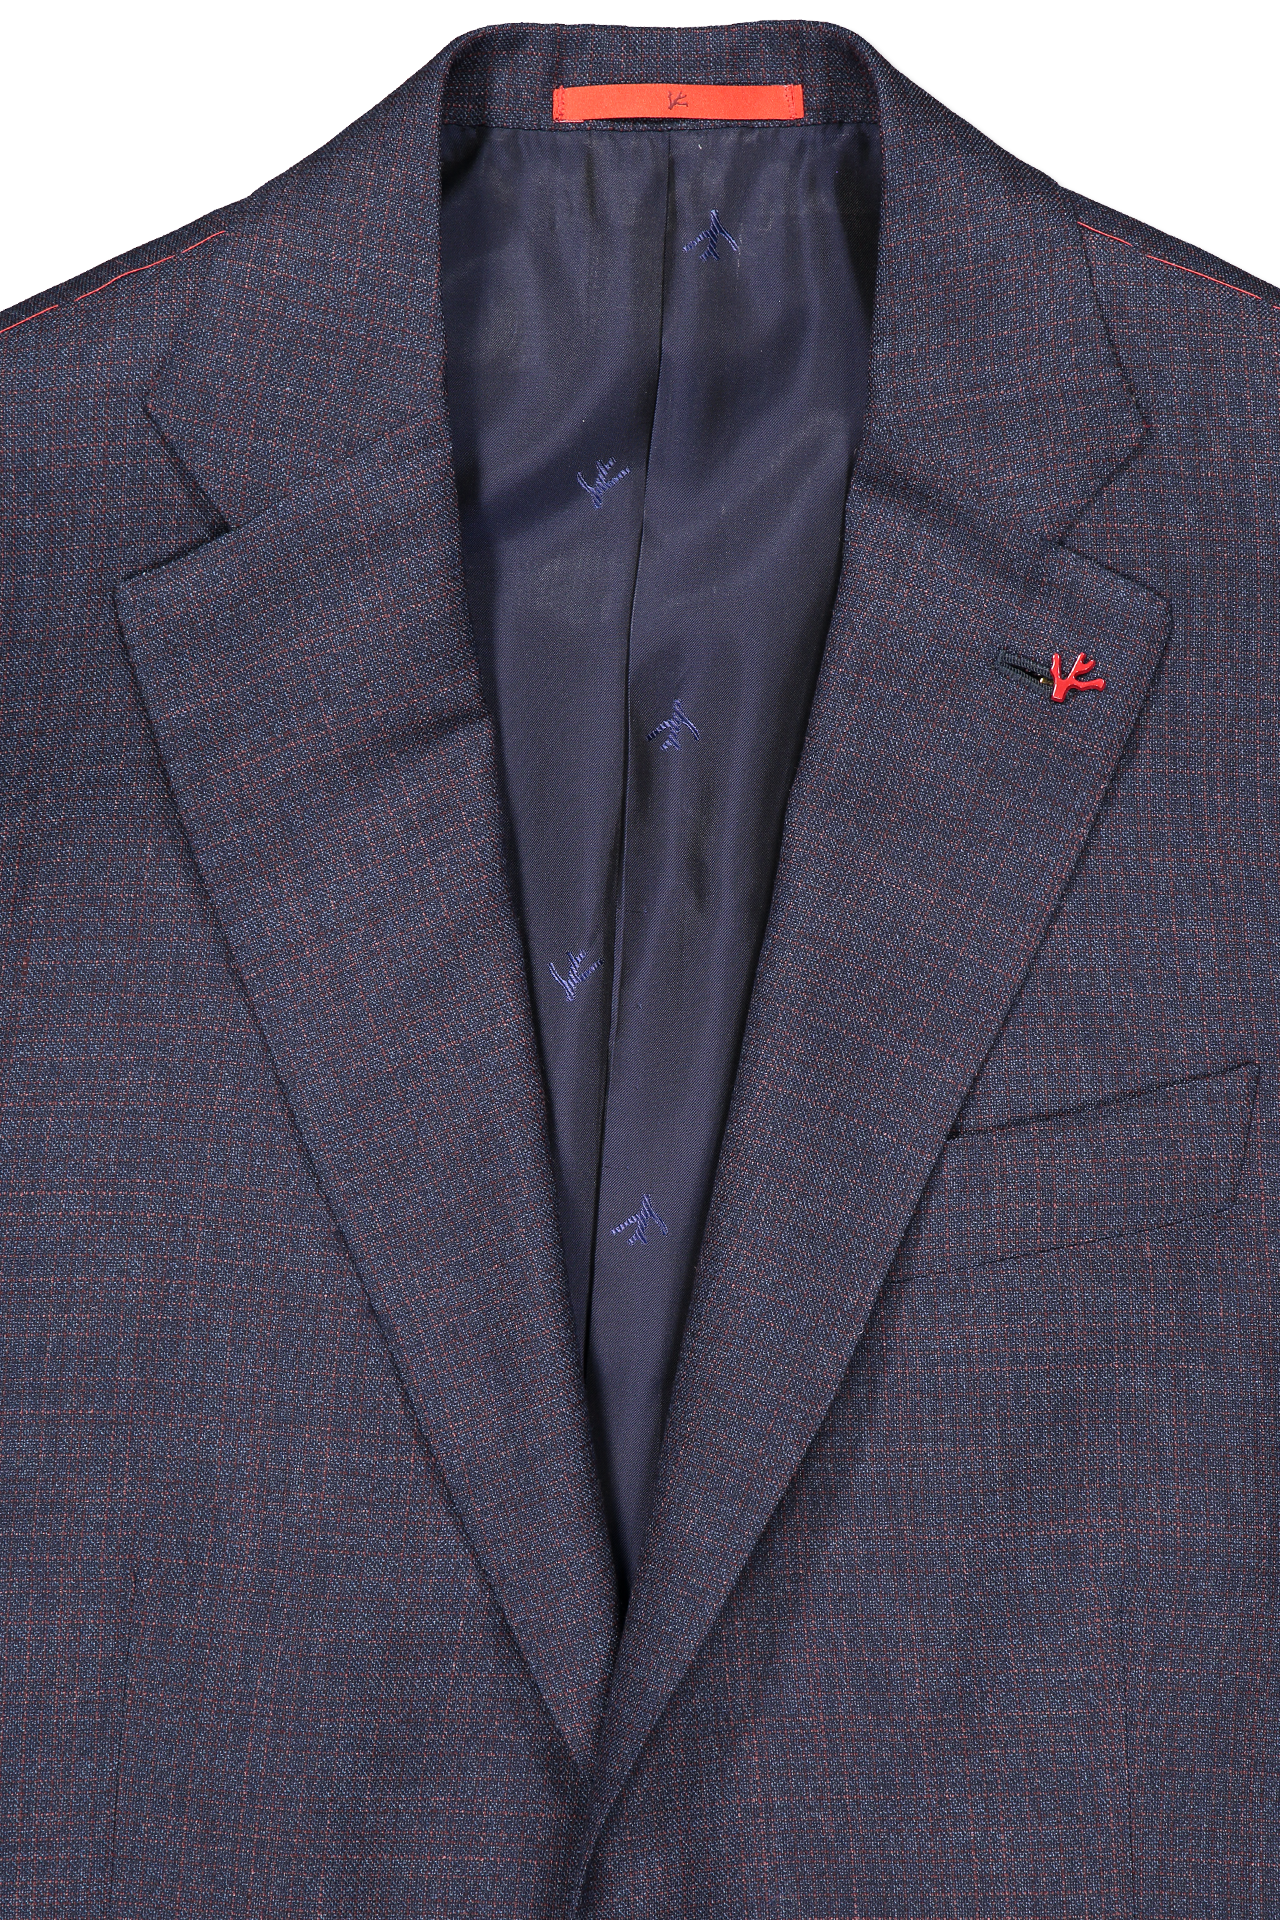 Front collar and lapel detail image of Isaia Navy Silky Linen Suit